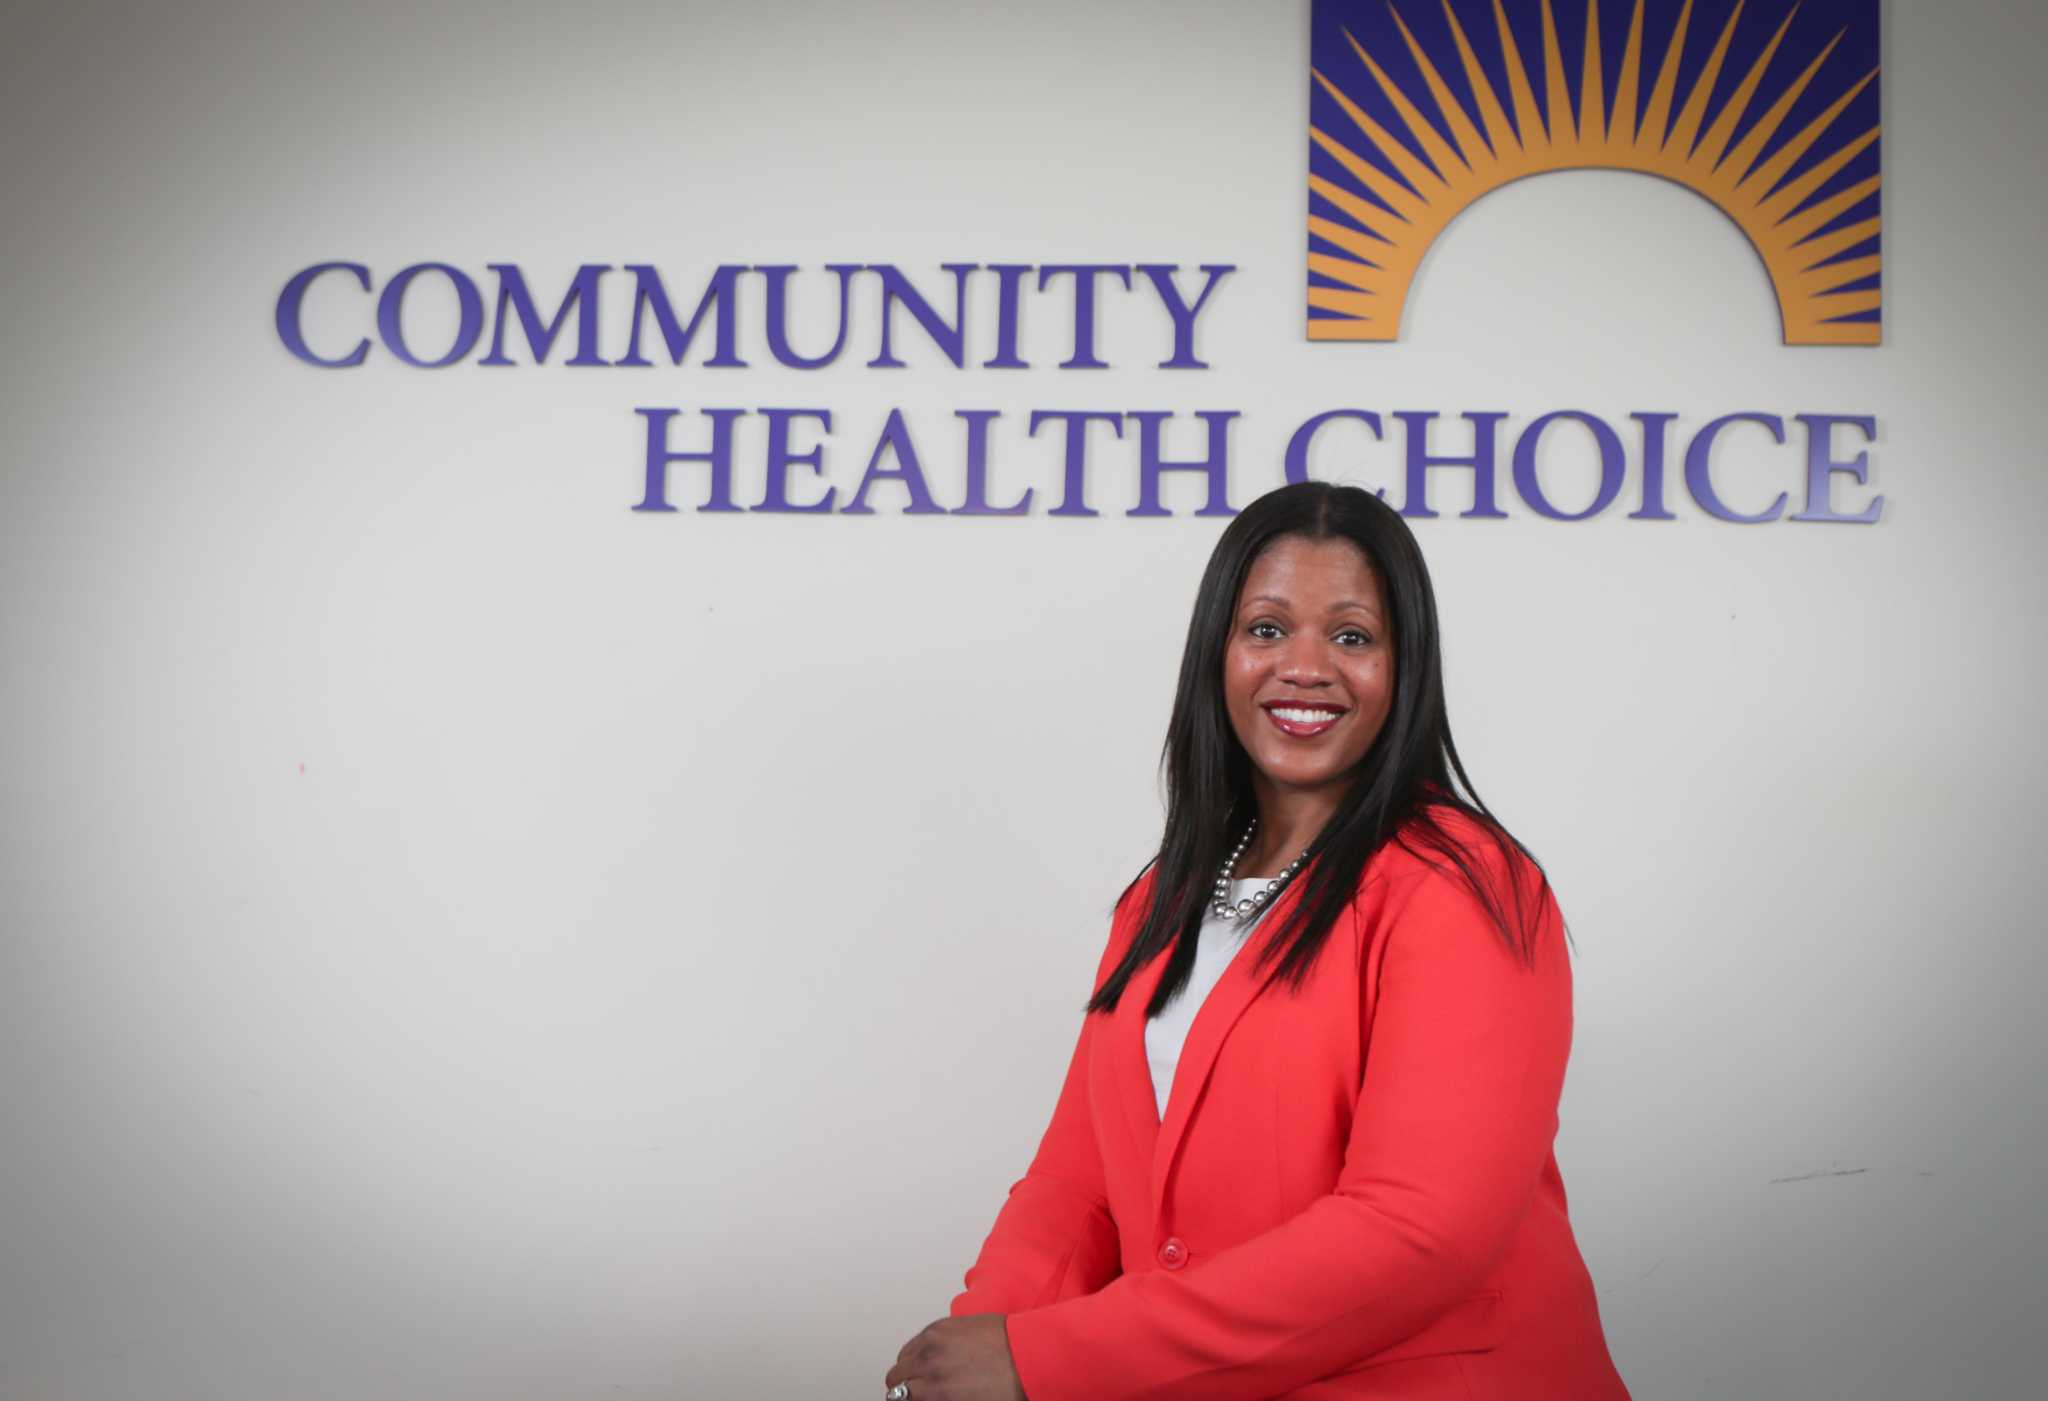 Lisa Wright takes the helm at Community Health Choice at a pivotal time